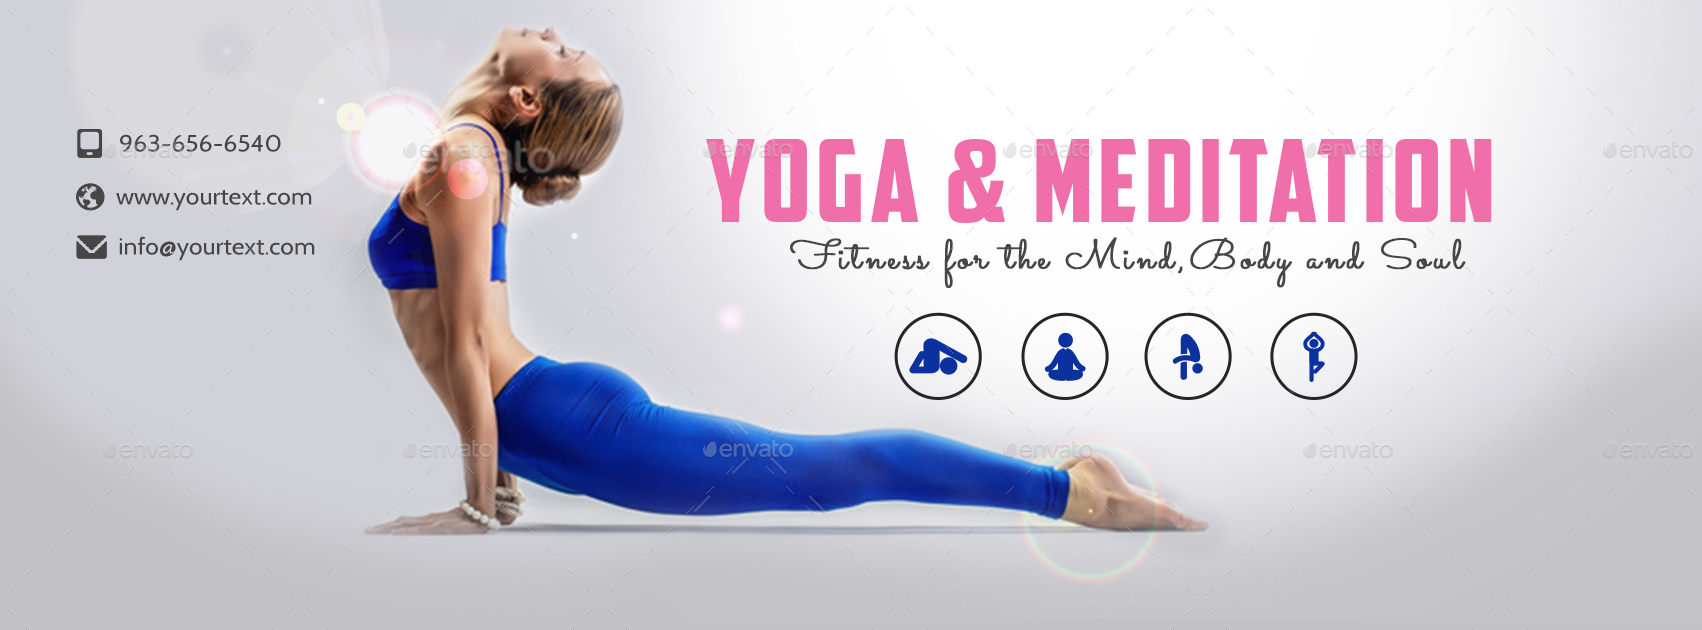 Yoga & Meditation Facebook Covers - 2 Designs by doto ...